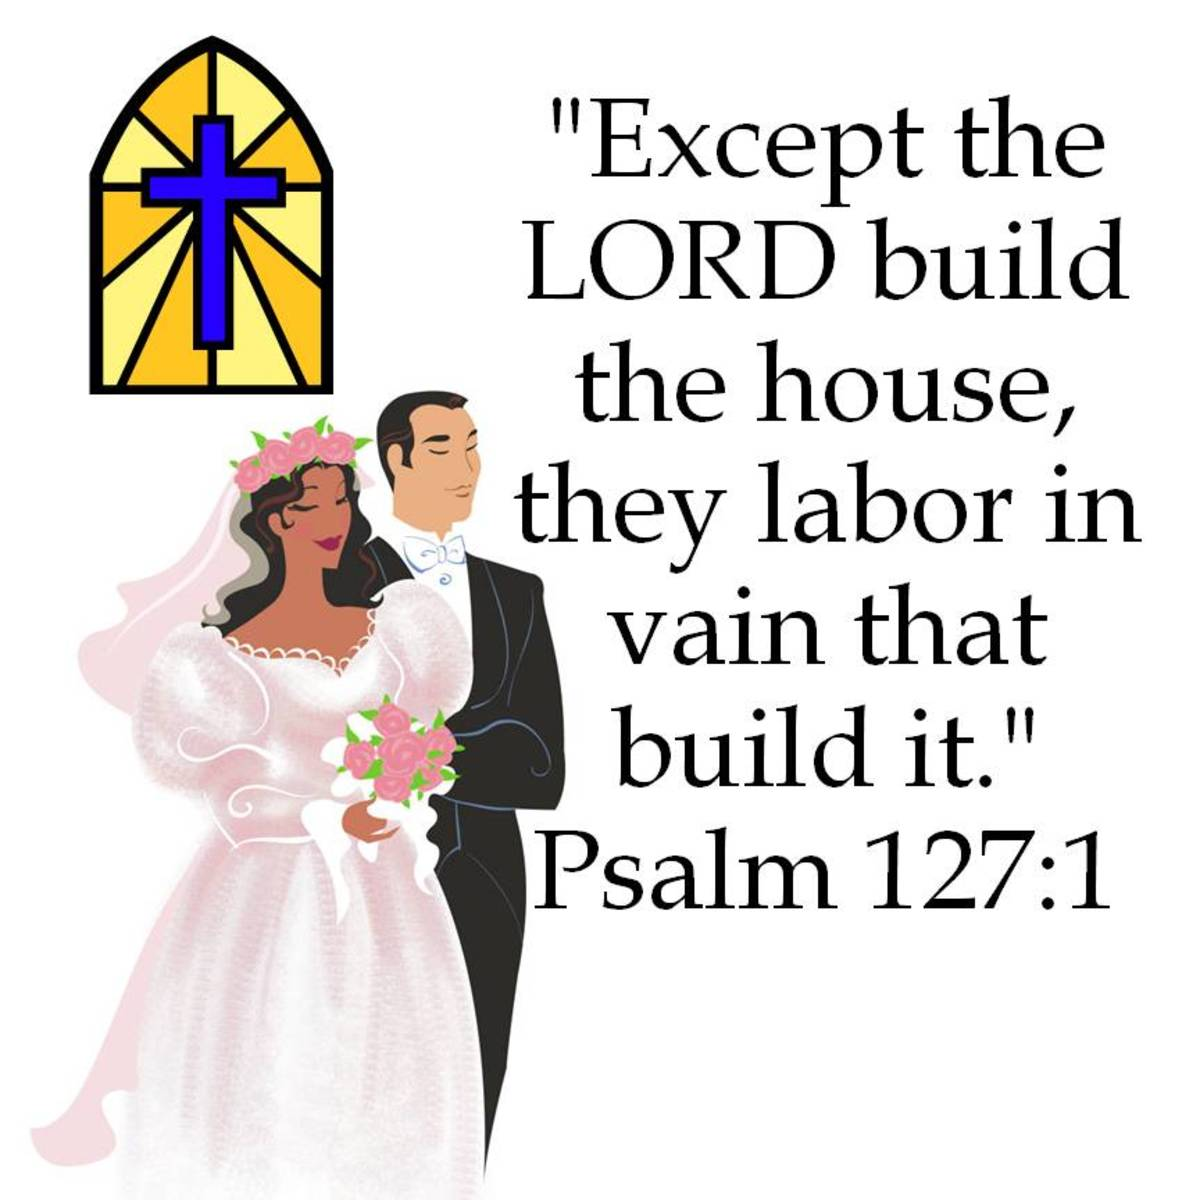 This is a Bible verse to encourage a newlywed couple to allow God to build their marriage.